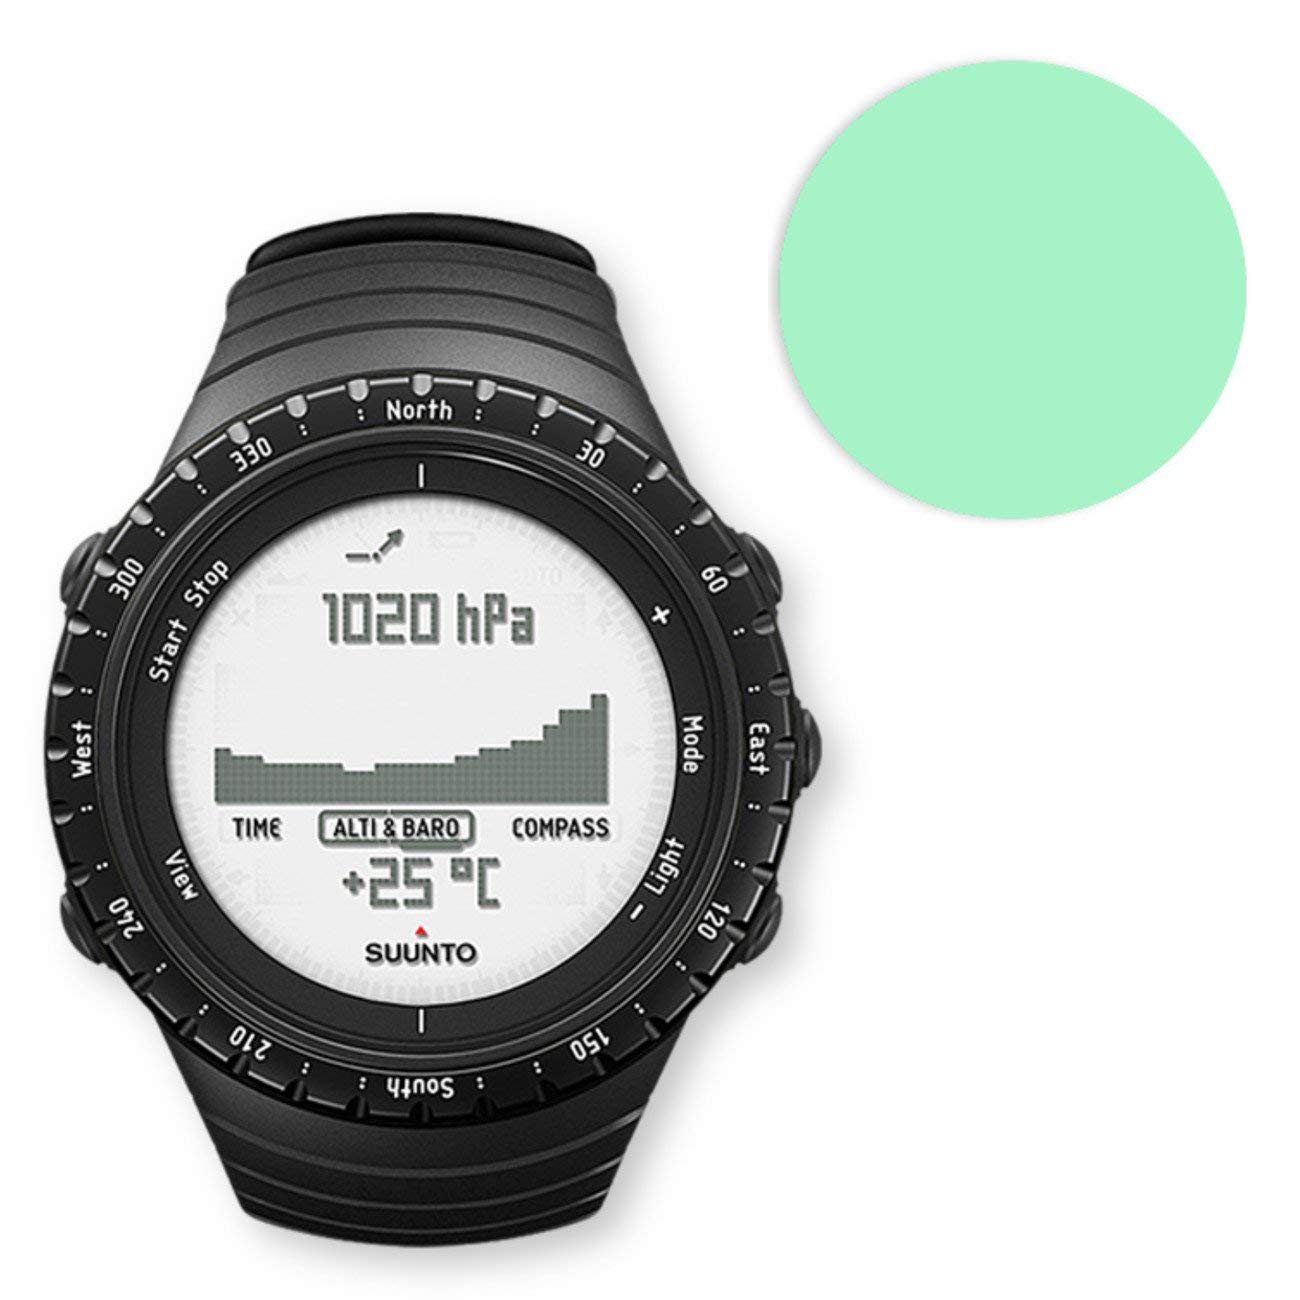 Cheap Black Core Alliance Find Deals On Line At Suunto Ultimate Get Quotations Golebo Screen Film For Privacy Protection Green Regular Premium Quality